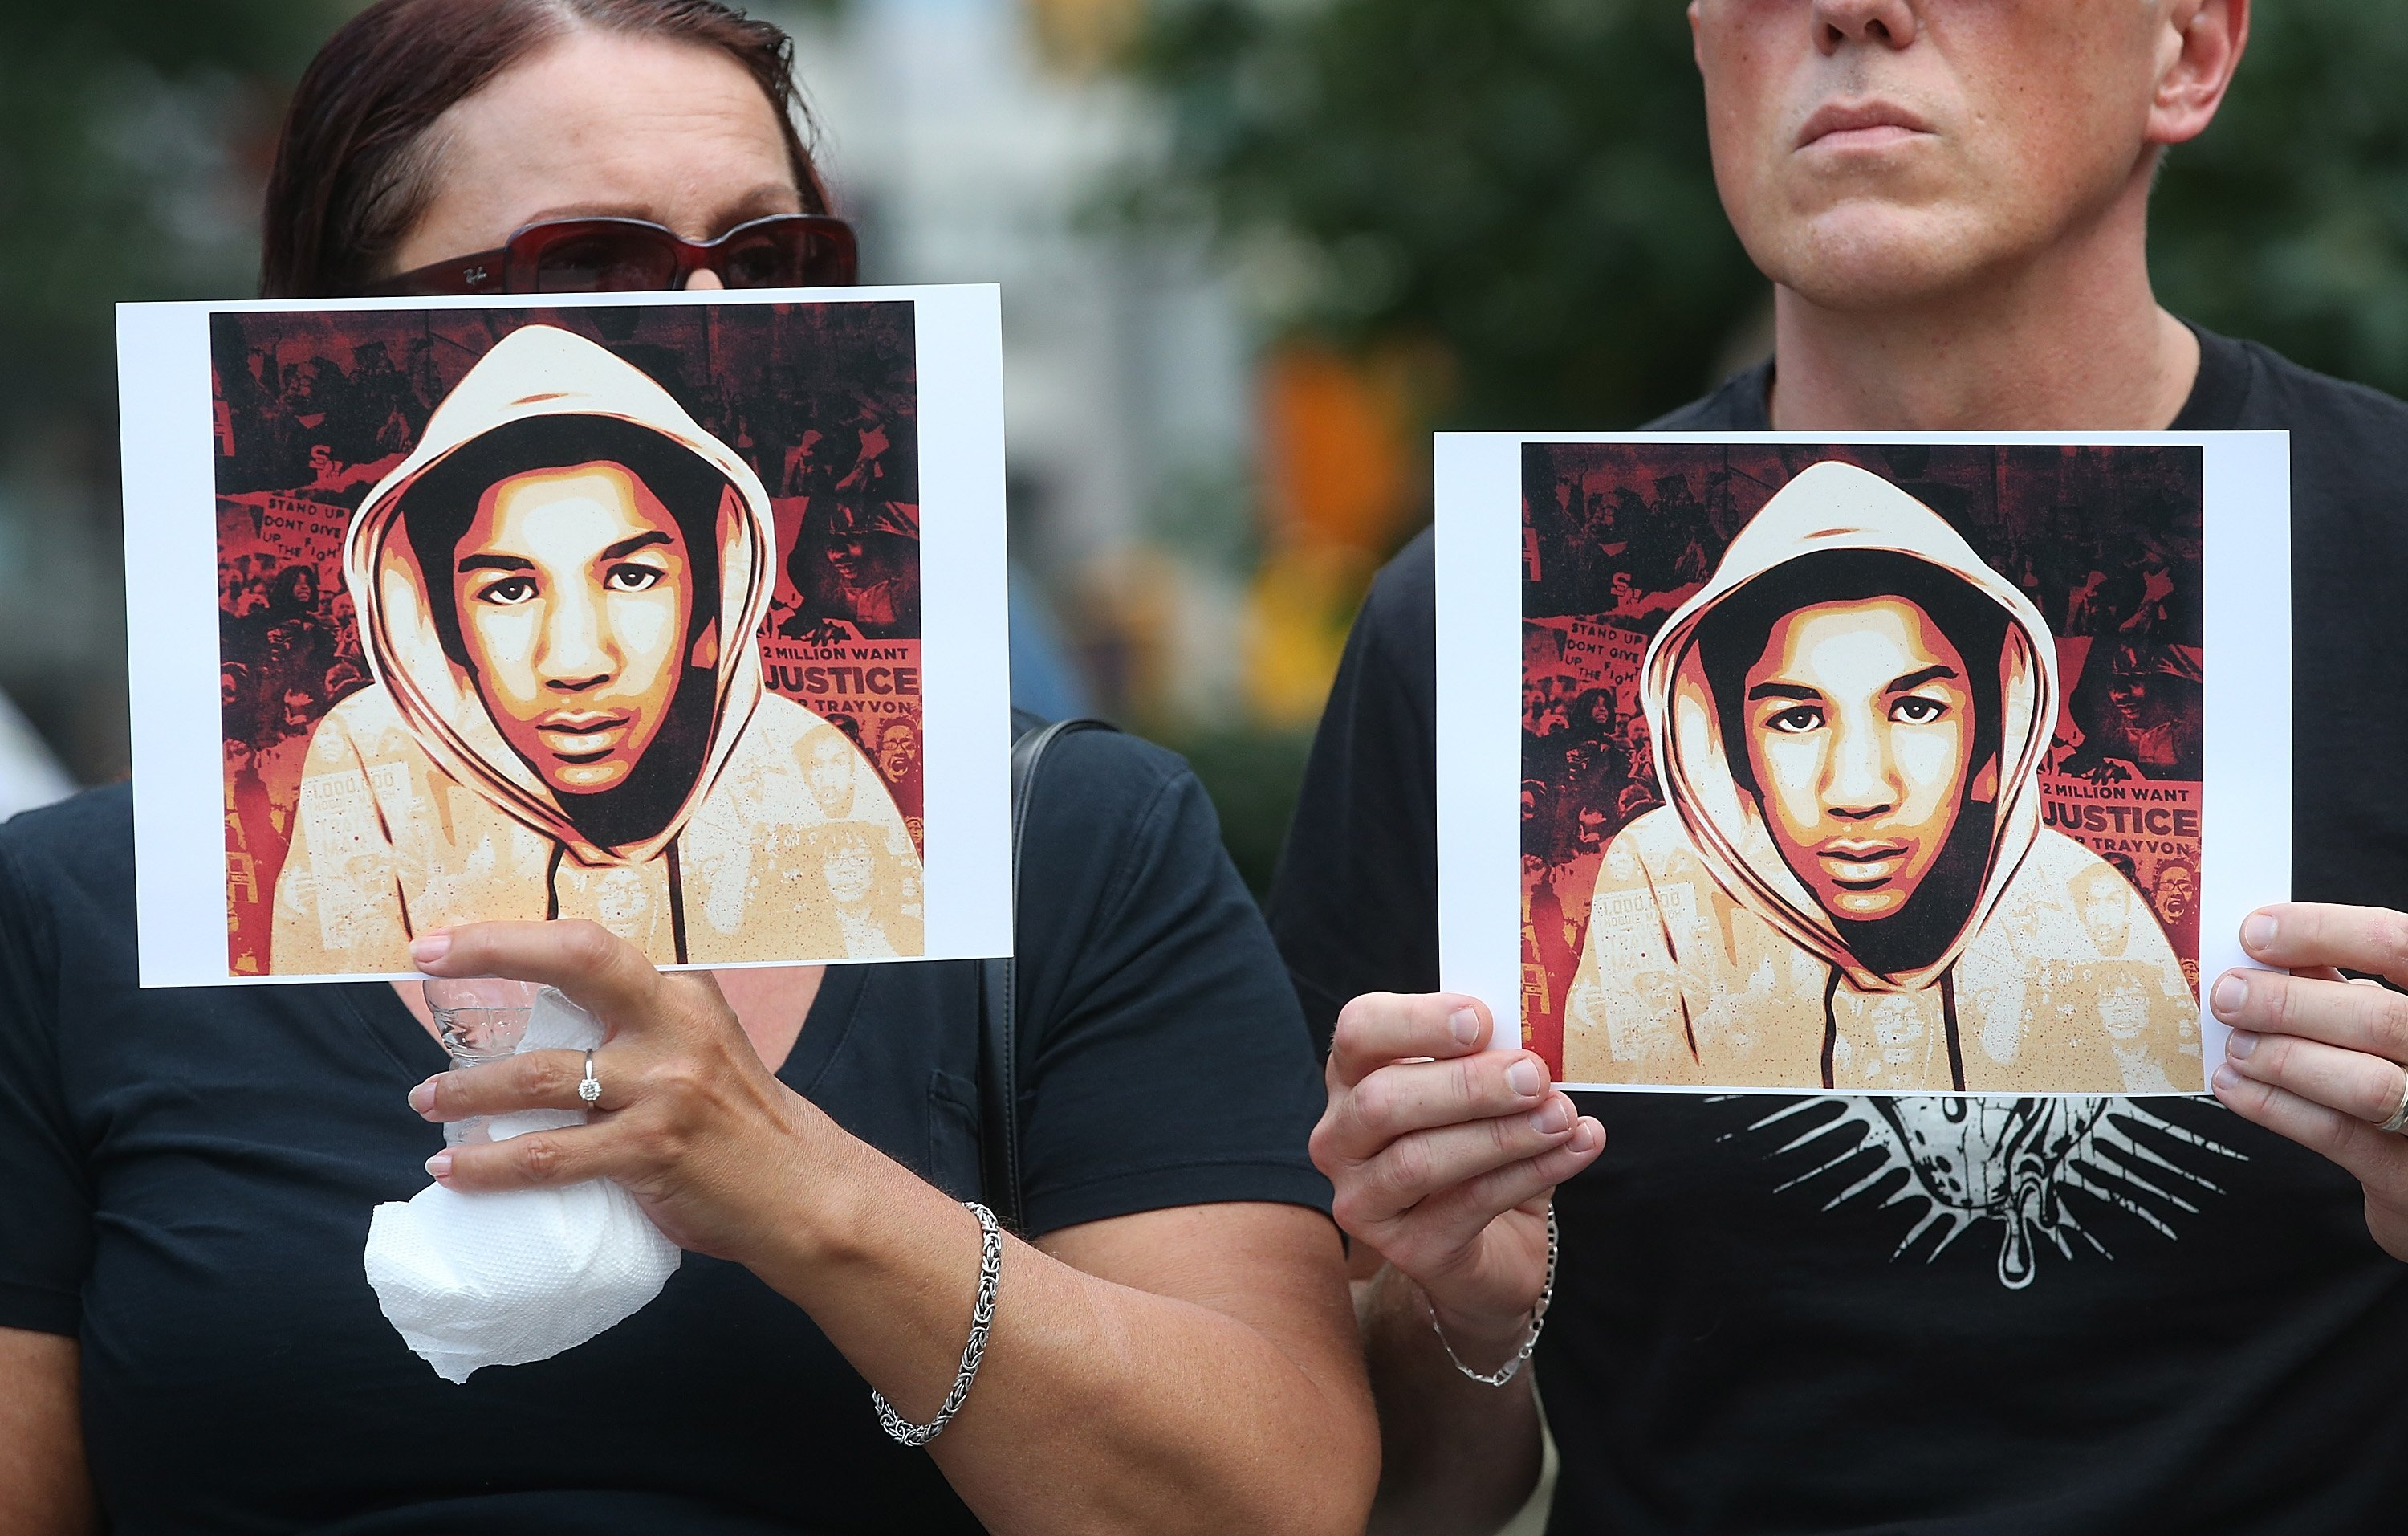 George Zimmerman lawsuit reminds us of how significant the Trayvon Martin case was for a divided country